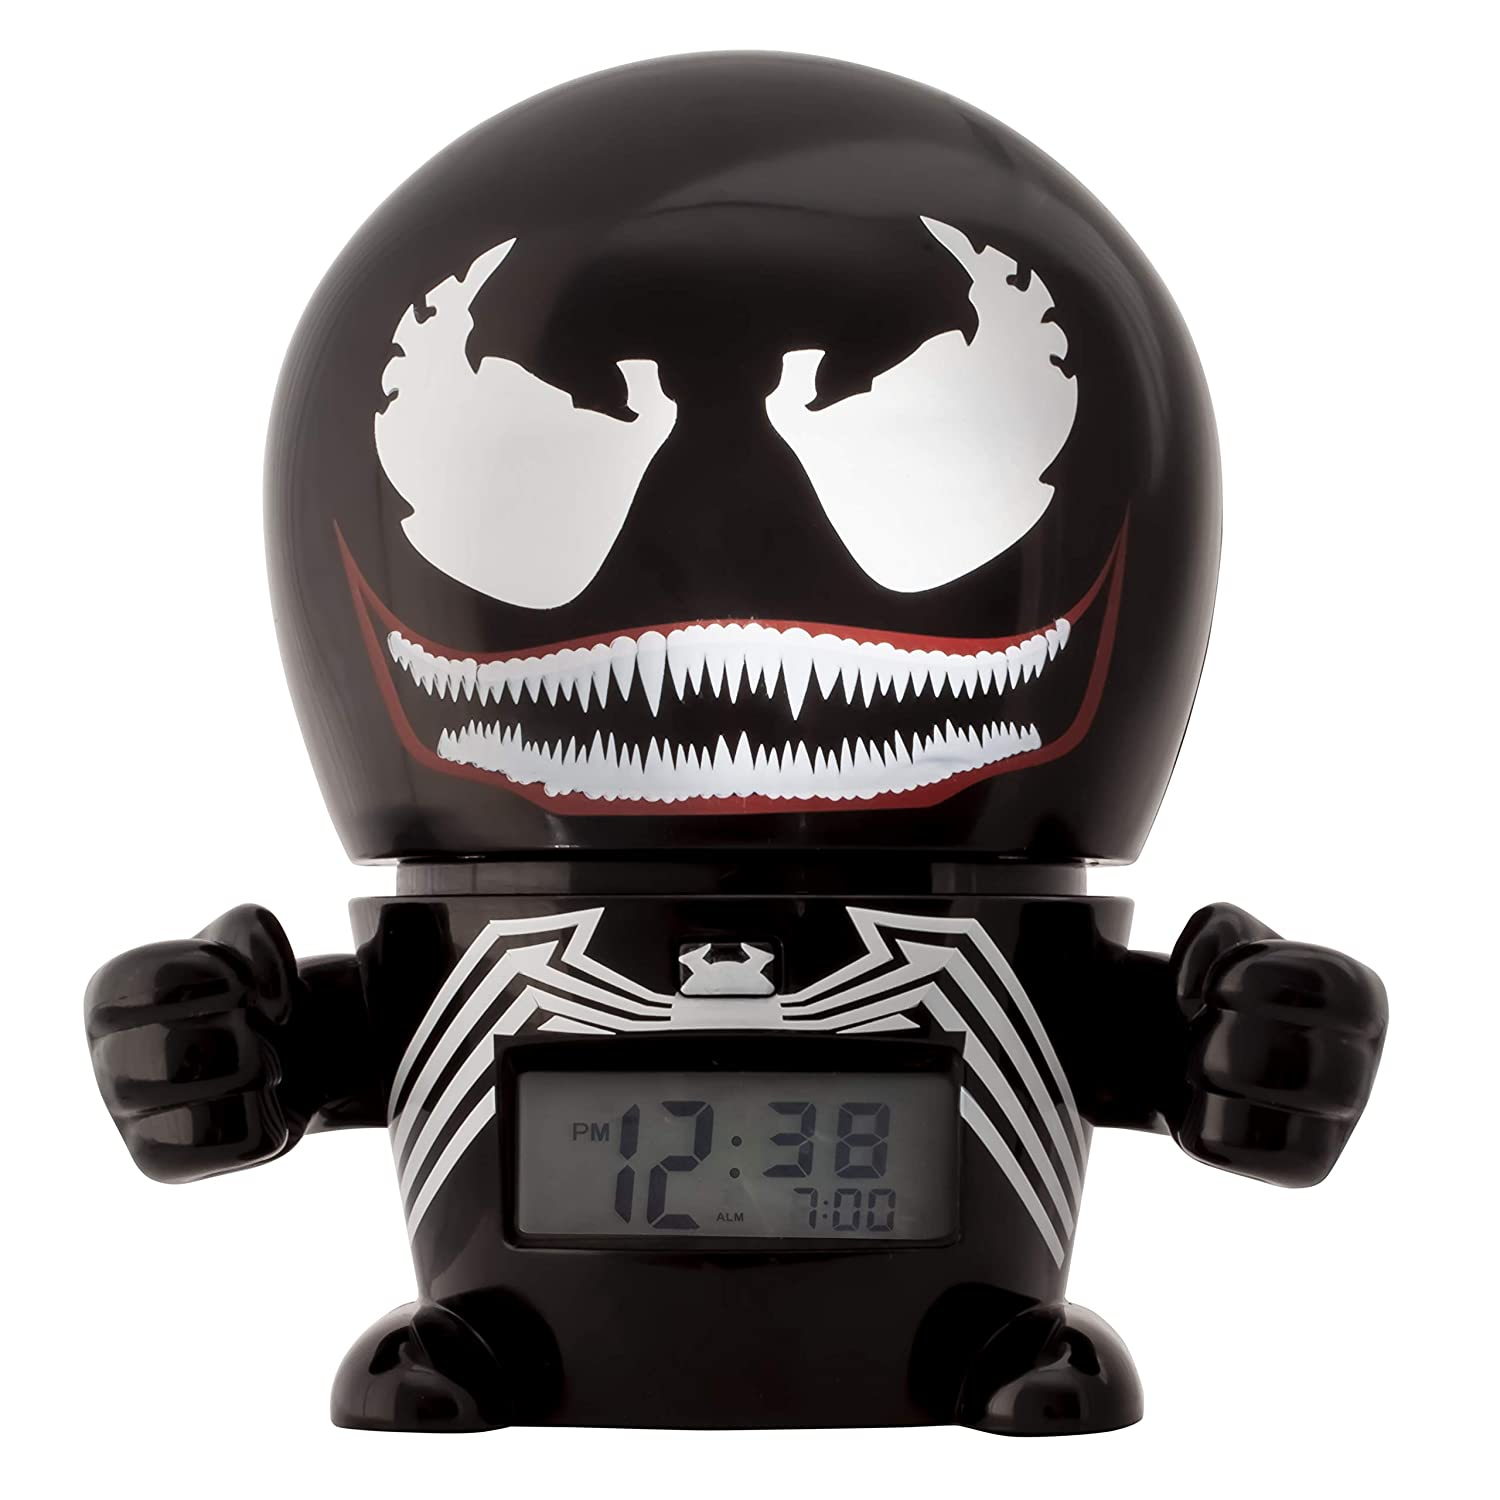 BulbBotz Marvel 2021715 Venom Kids Night Light Alarm Clock with Characterised Sound | black/red | plastic | 5.5 inches tall | LCD display | boy girl | official Clictime